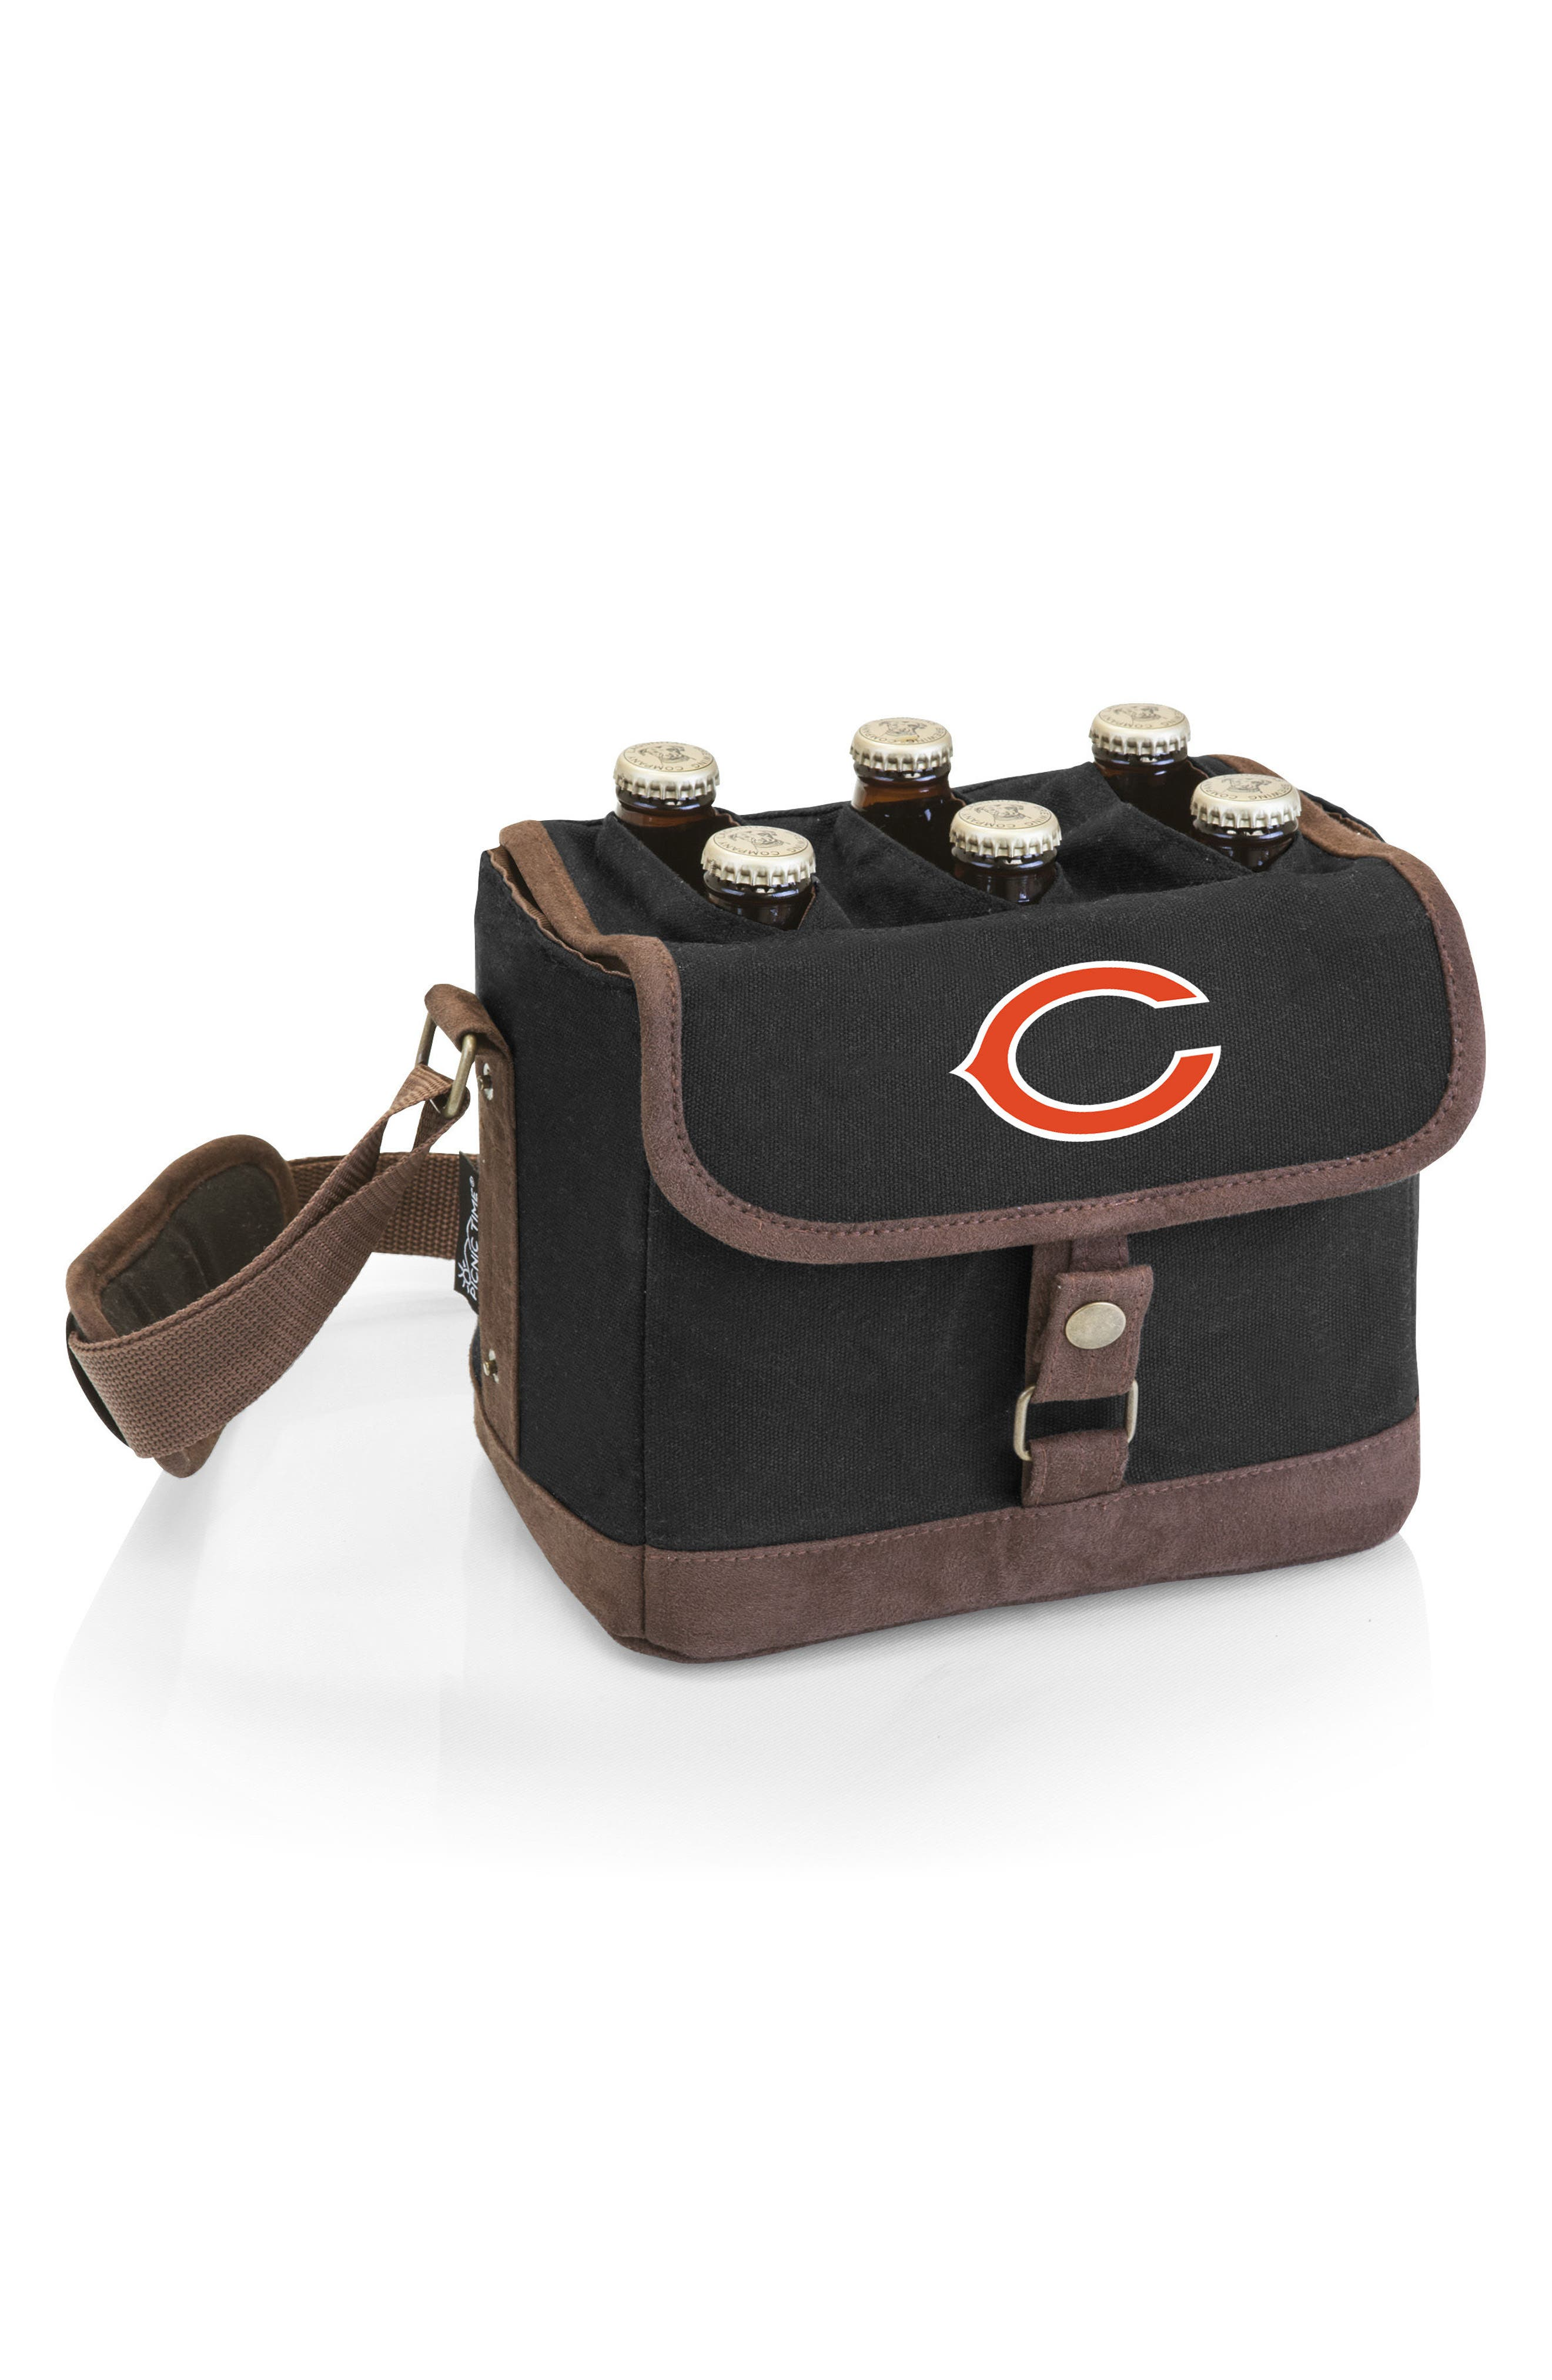 NFL Team Logo Beer Caddy Cooler Tote,                         Main,                         color, Chicago Bears